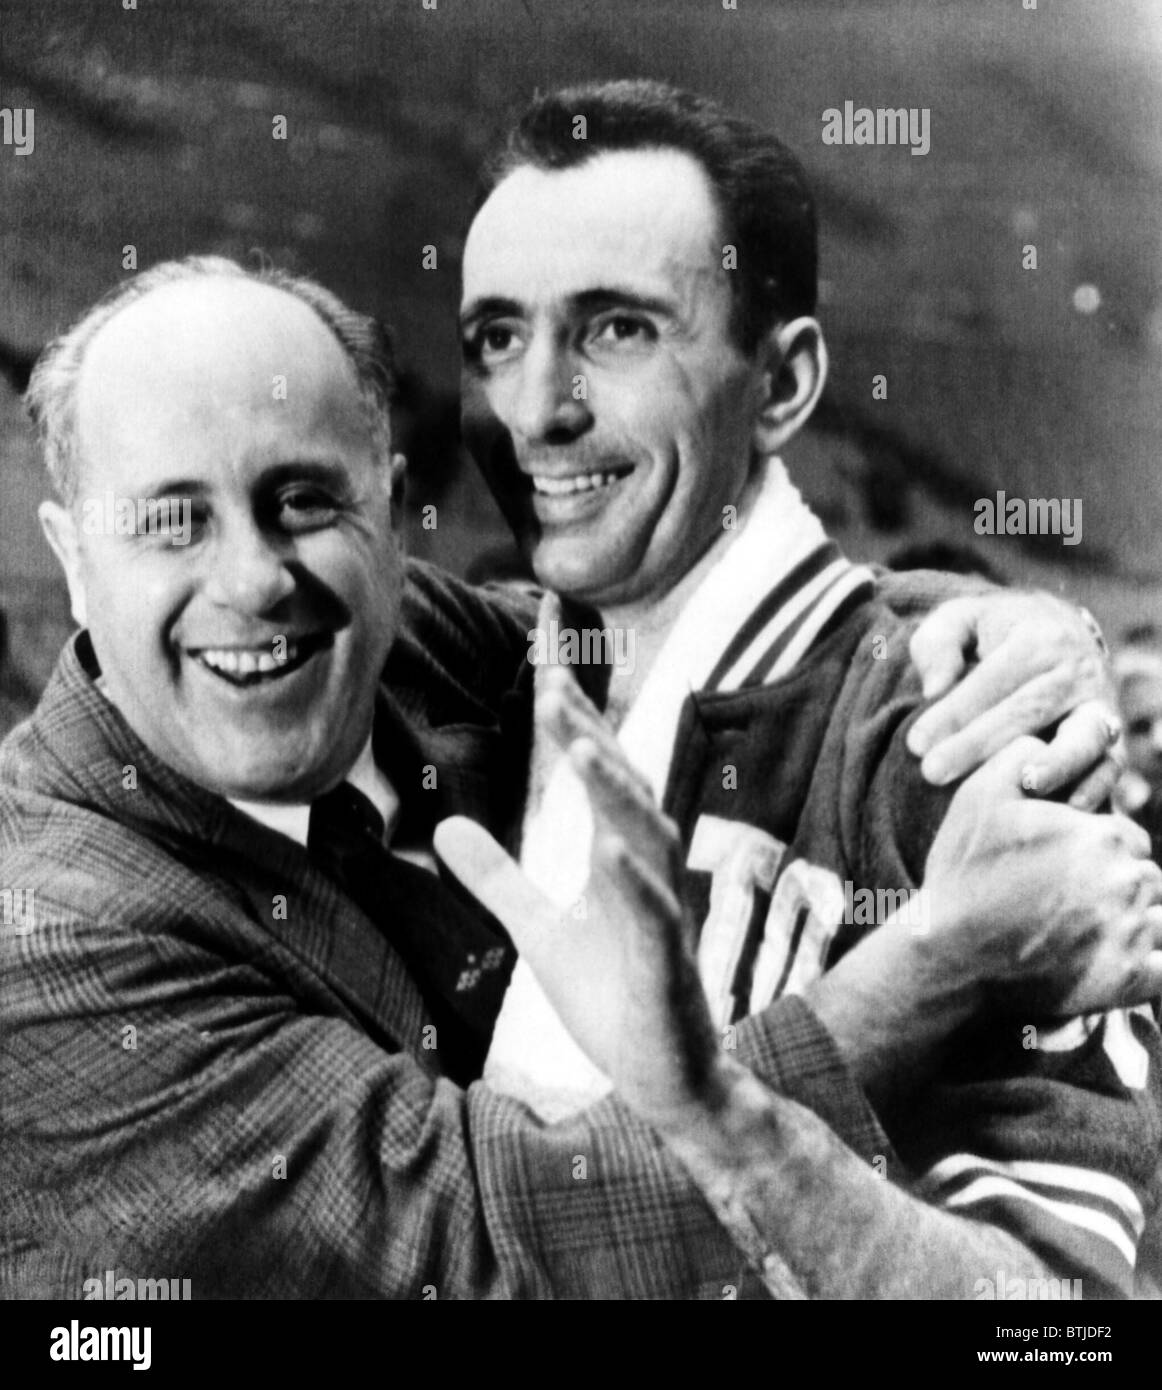 Boston Celtics coach Red Auerbach hugs Bob Cousy after their 1963